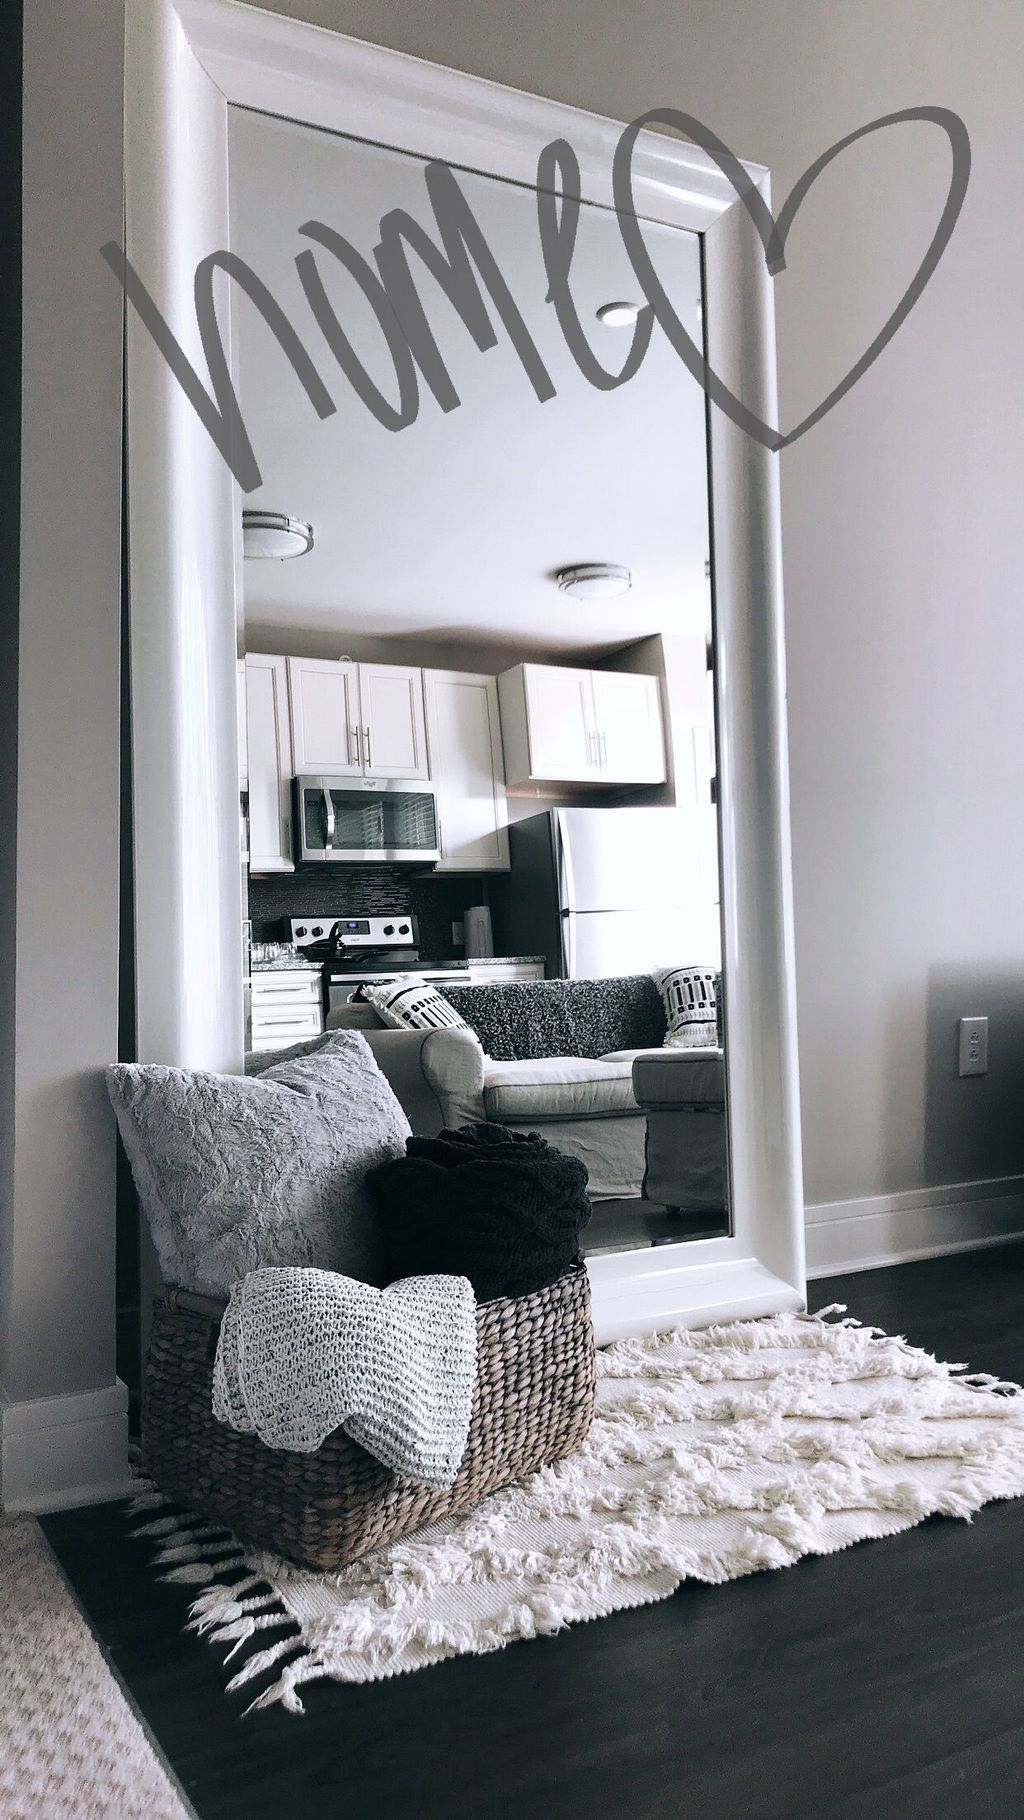 st apartment ideas goals simple decor small decorating also like what you see follow me for more india rh pinterest